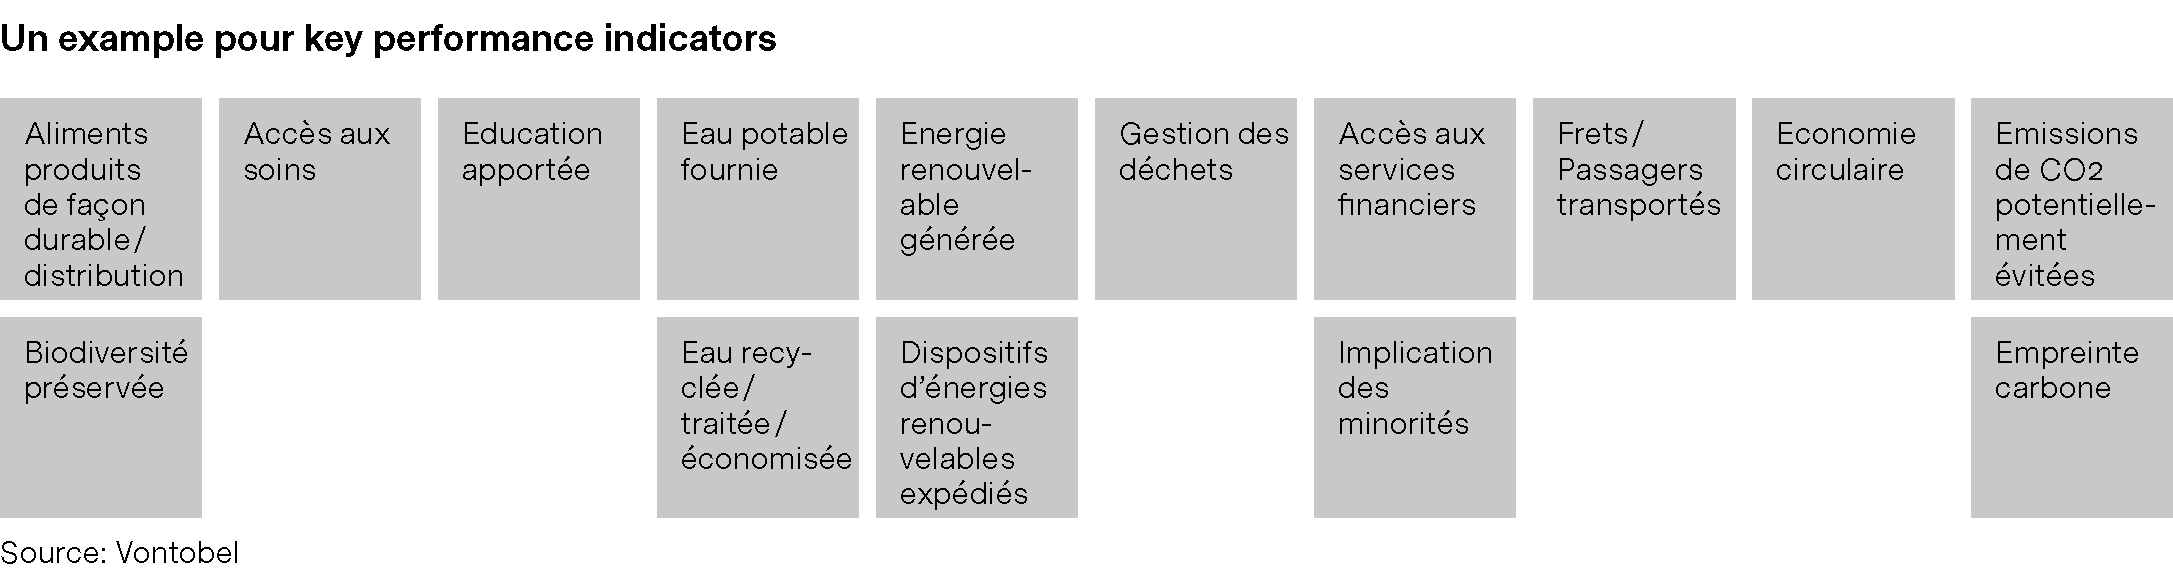 2021-08-19_TI_Your-guide-to-impact-investing_figure3_fr